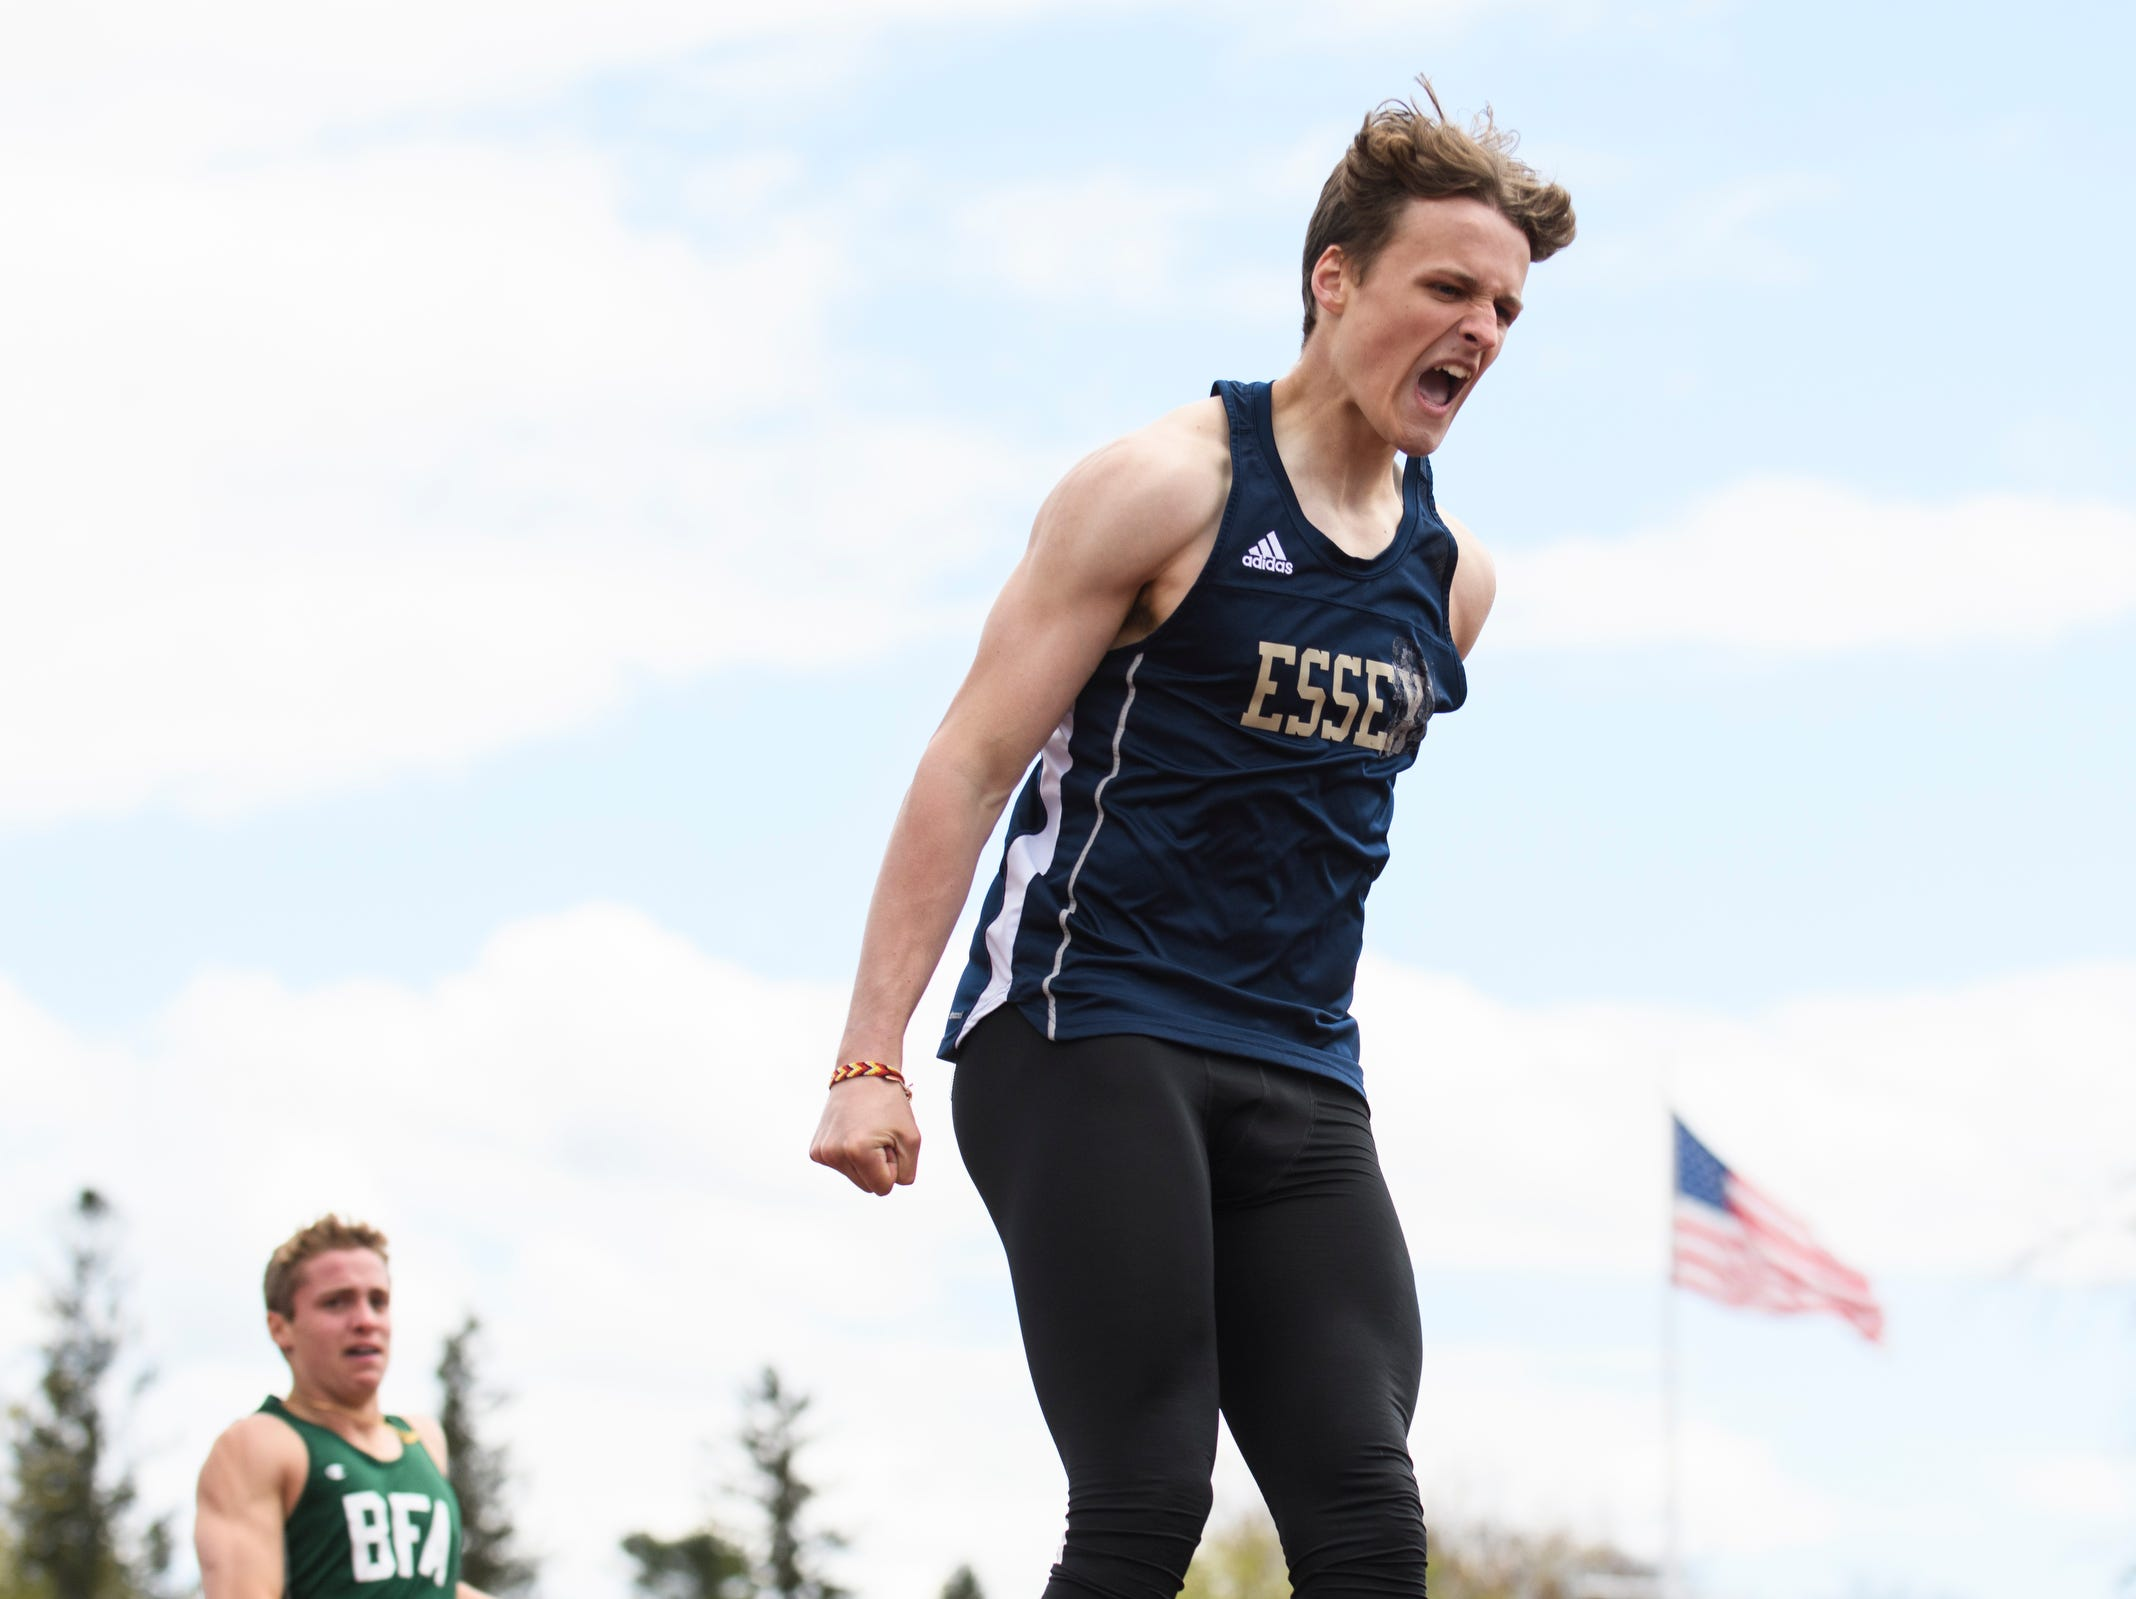 Essex's James Boldosser celebrates as he crosses the finish line in first place in the 400m dash during the Burlington Invitational high school track and field meet at Buck Hard Field on Saturday May 11, 2019 in Burlington, Vermont.